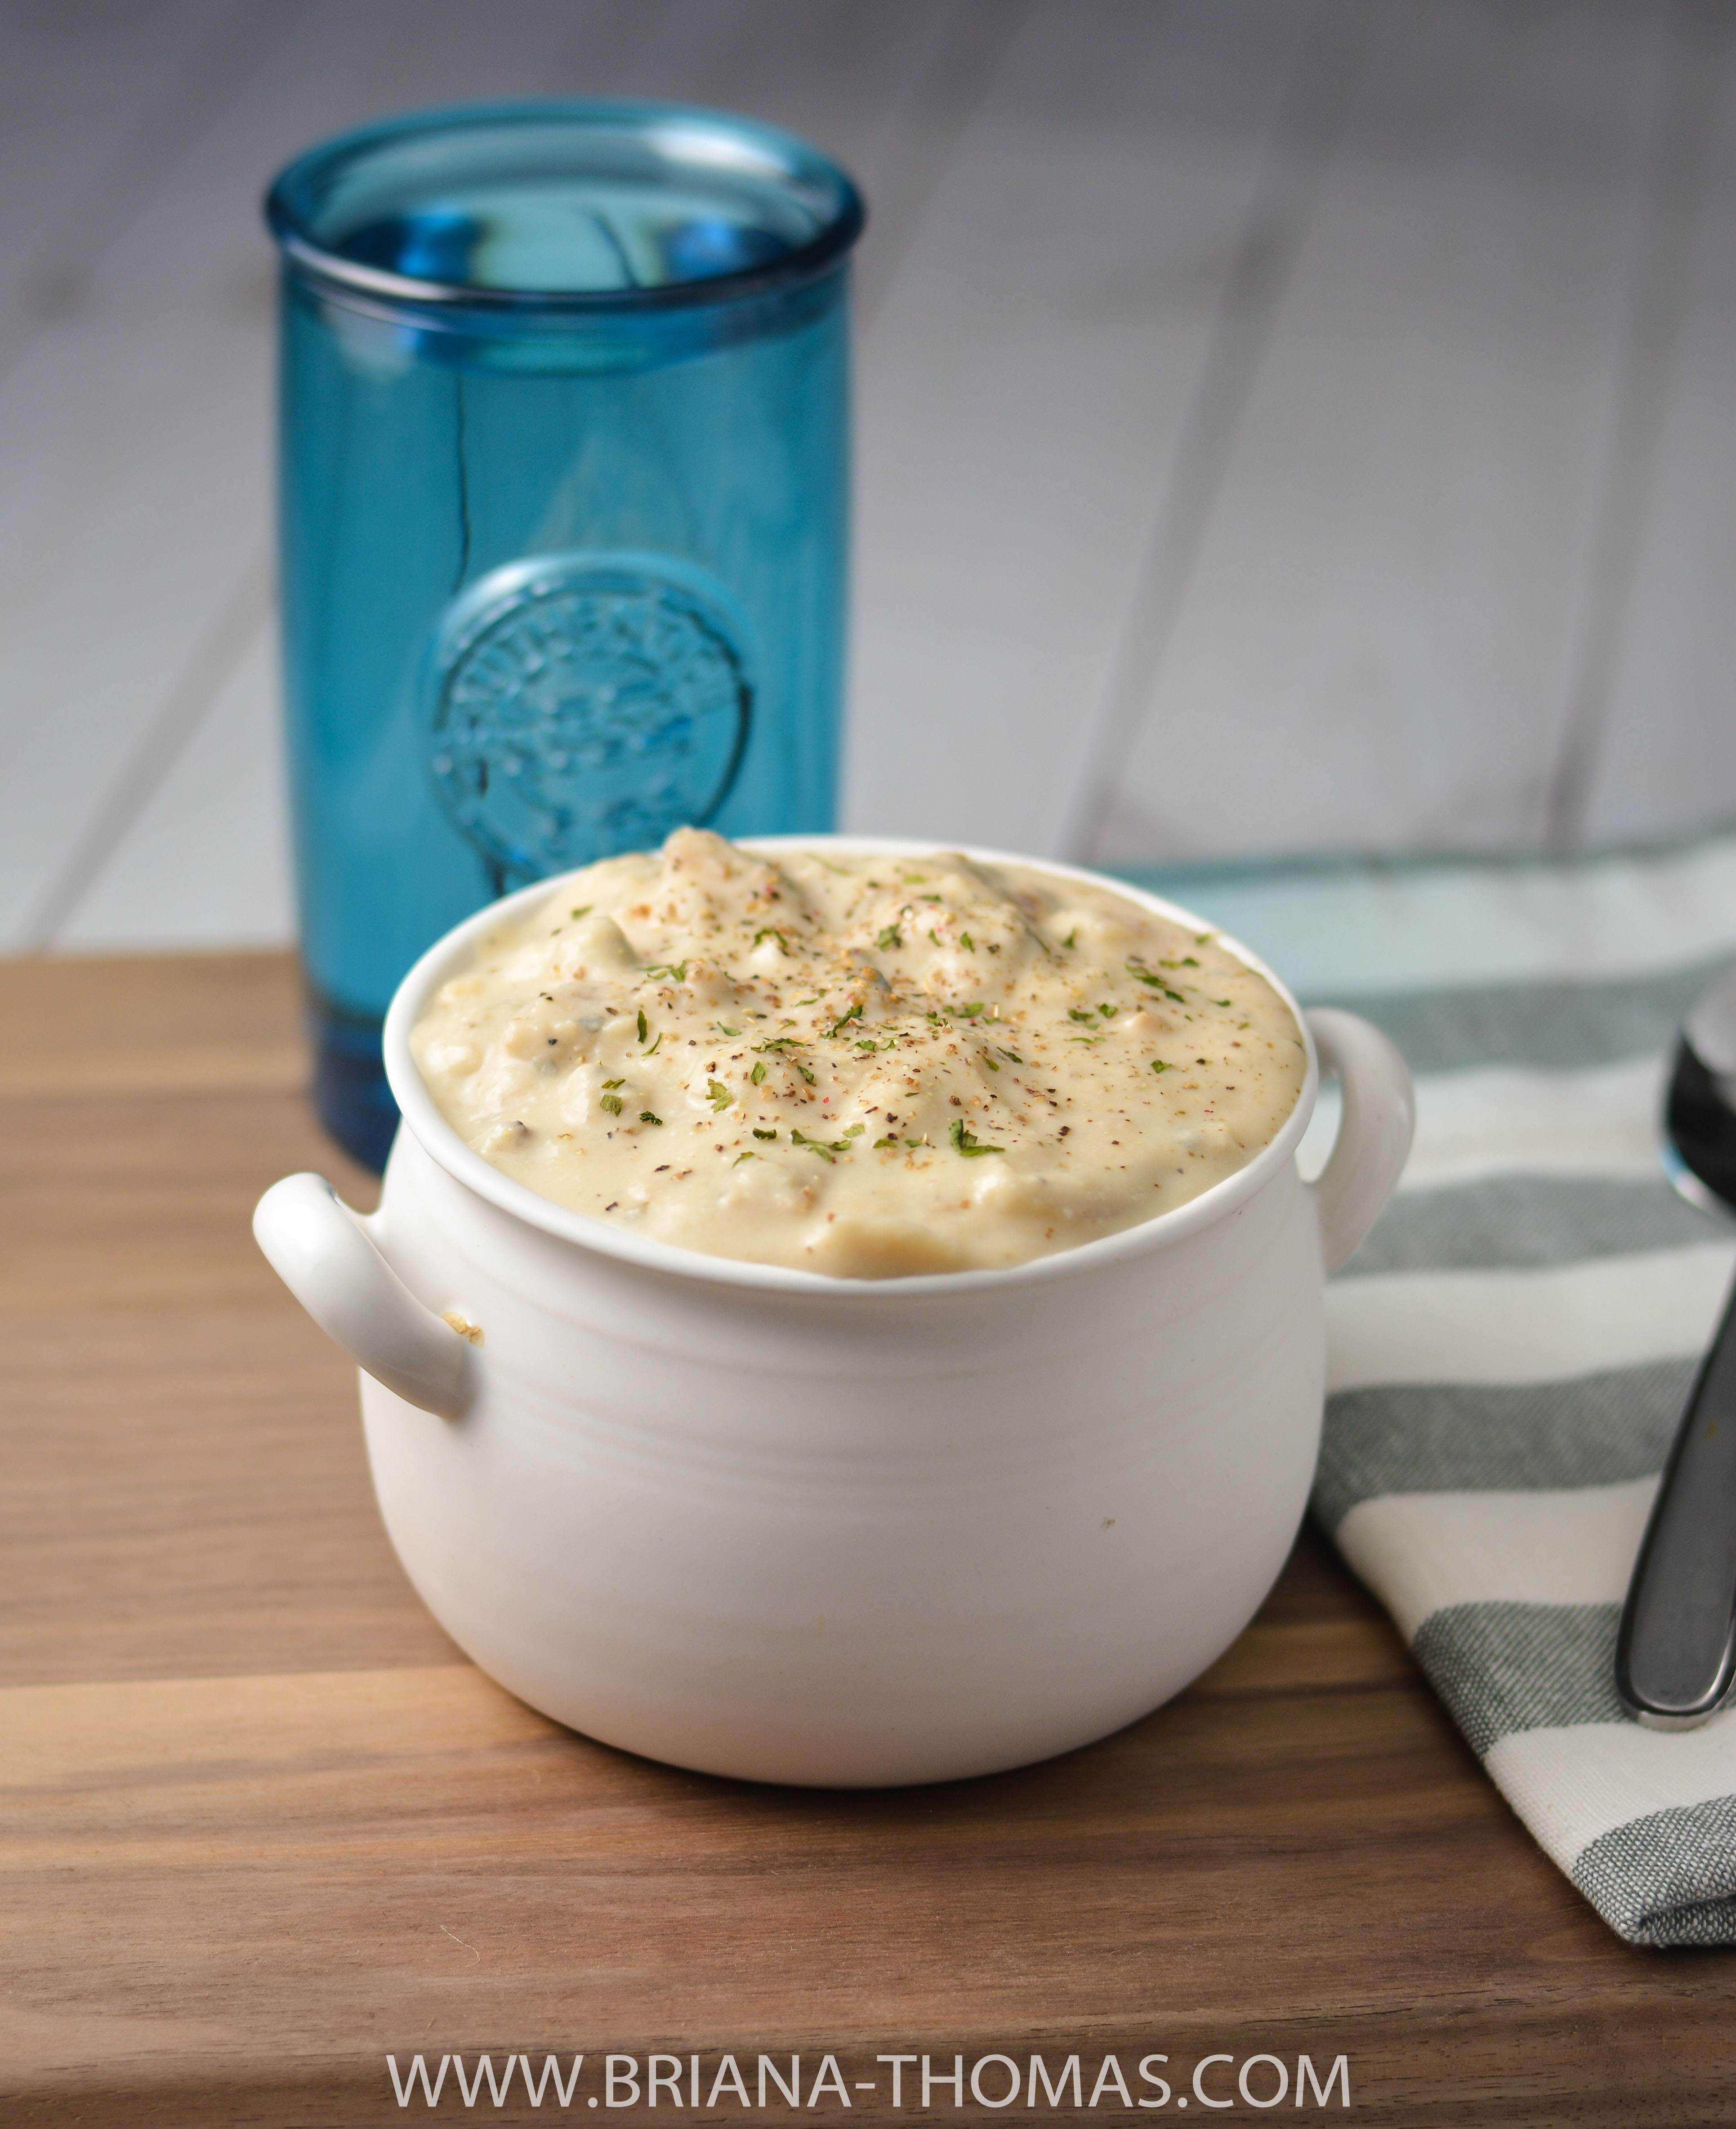 This Low-Carb Clam Chowder is so creamy and thick, but it's completely on plan as a THM S! Gluten free, egg free, and nut free